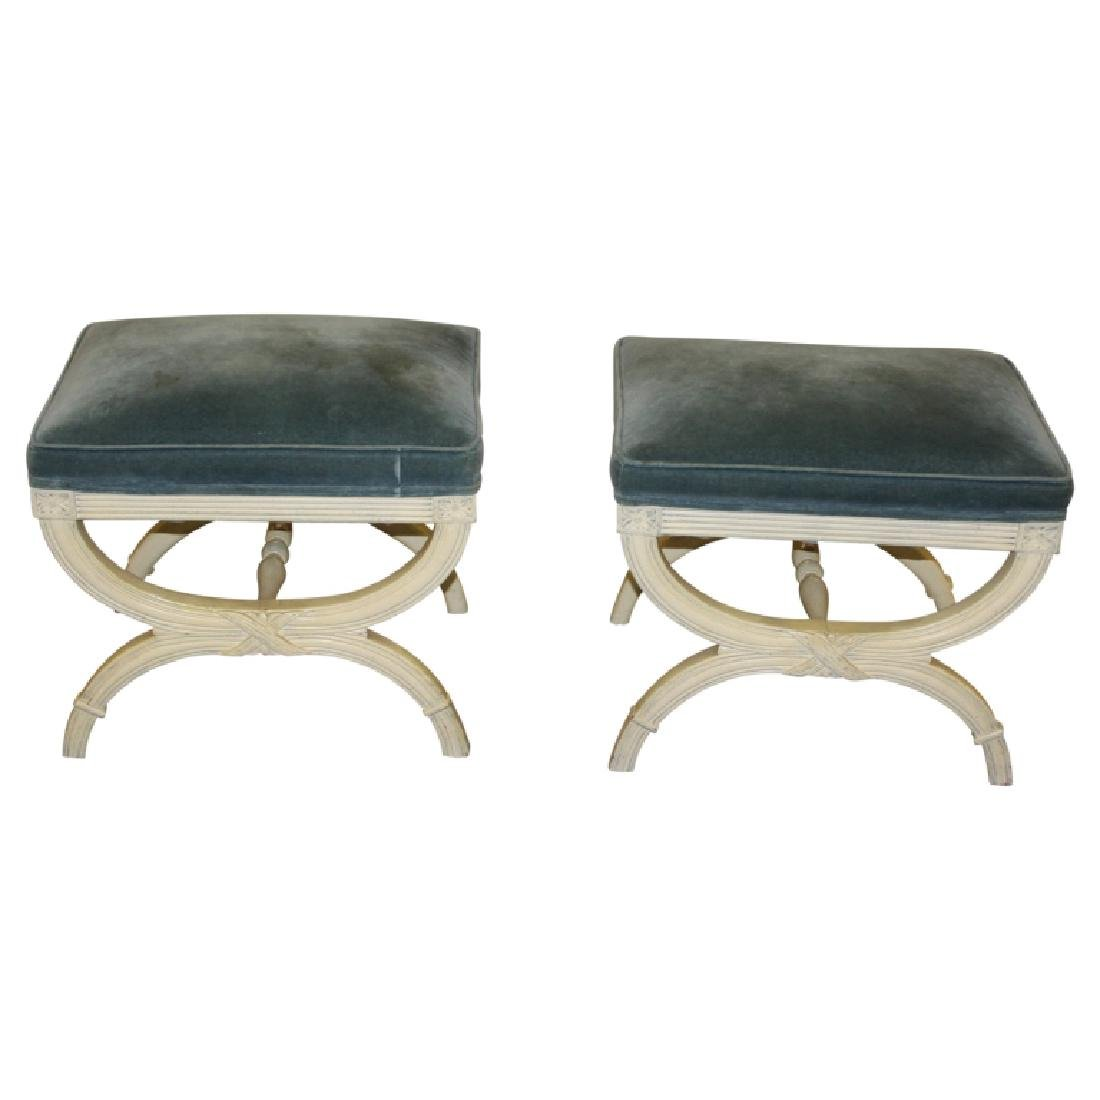 Pair of French Benches